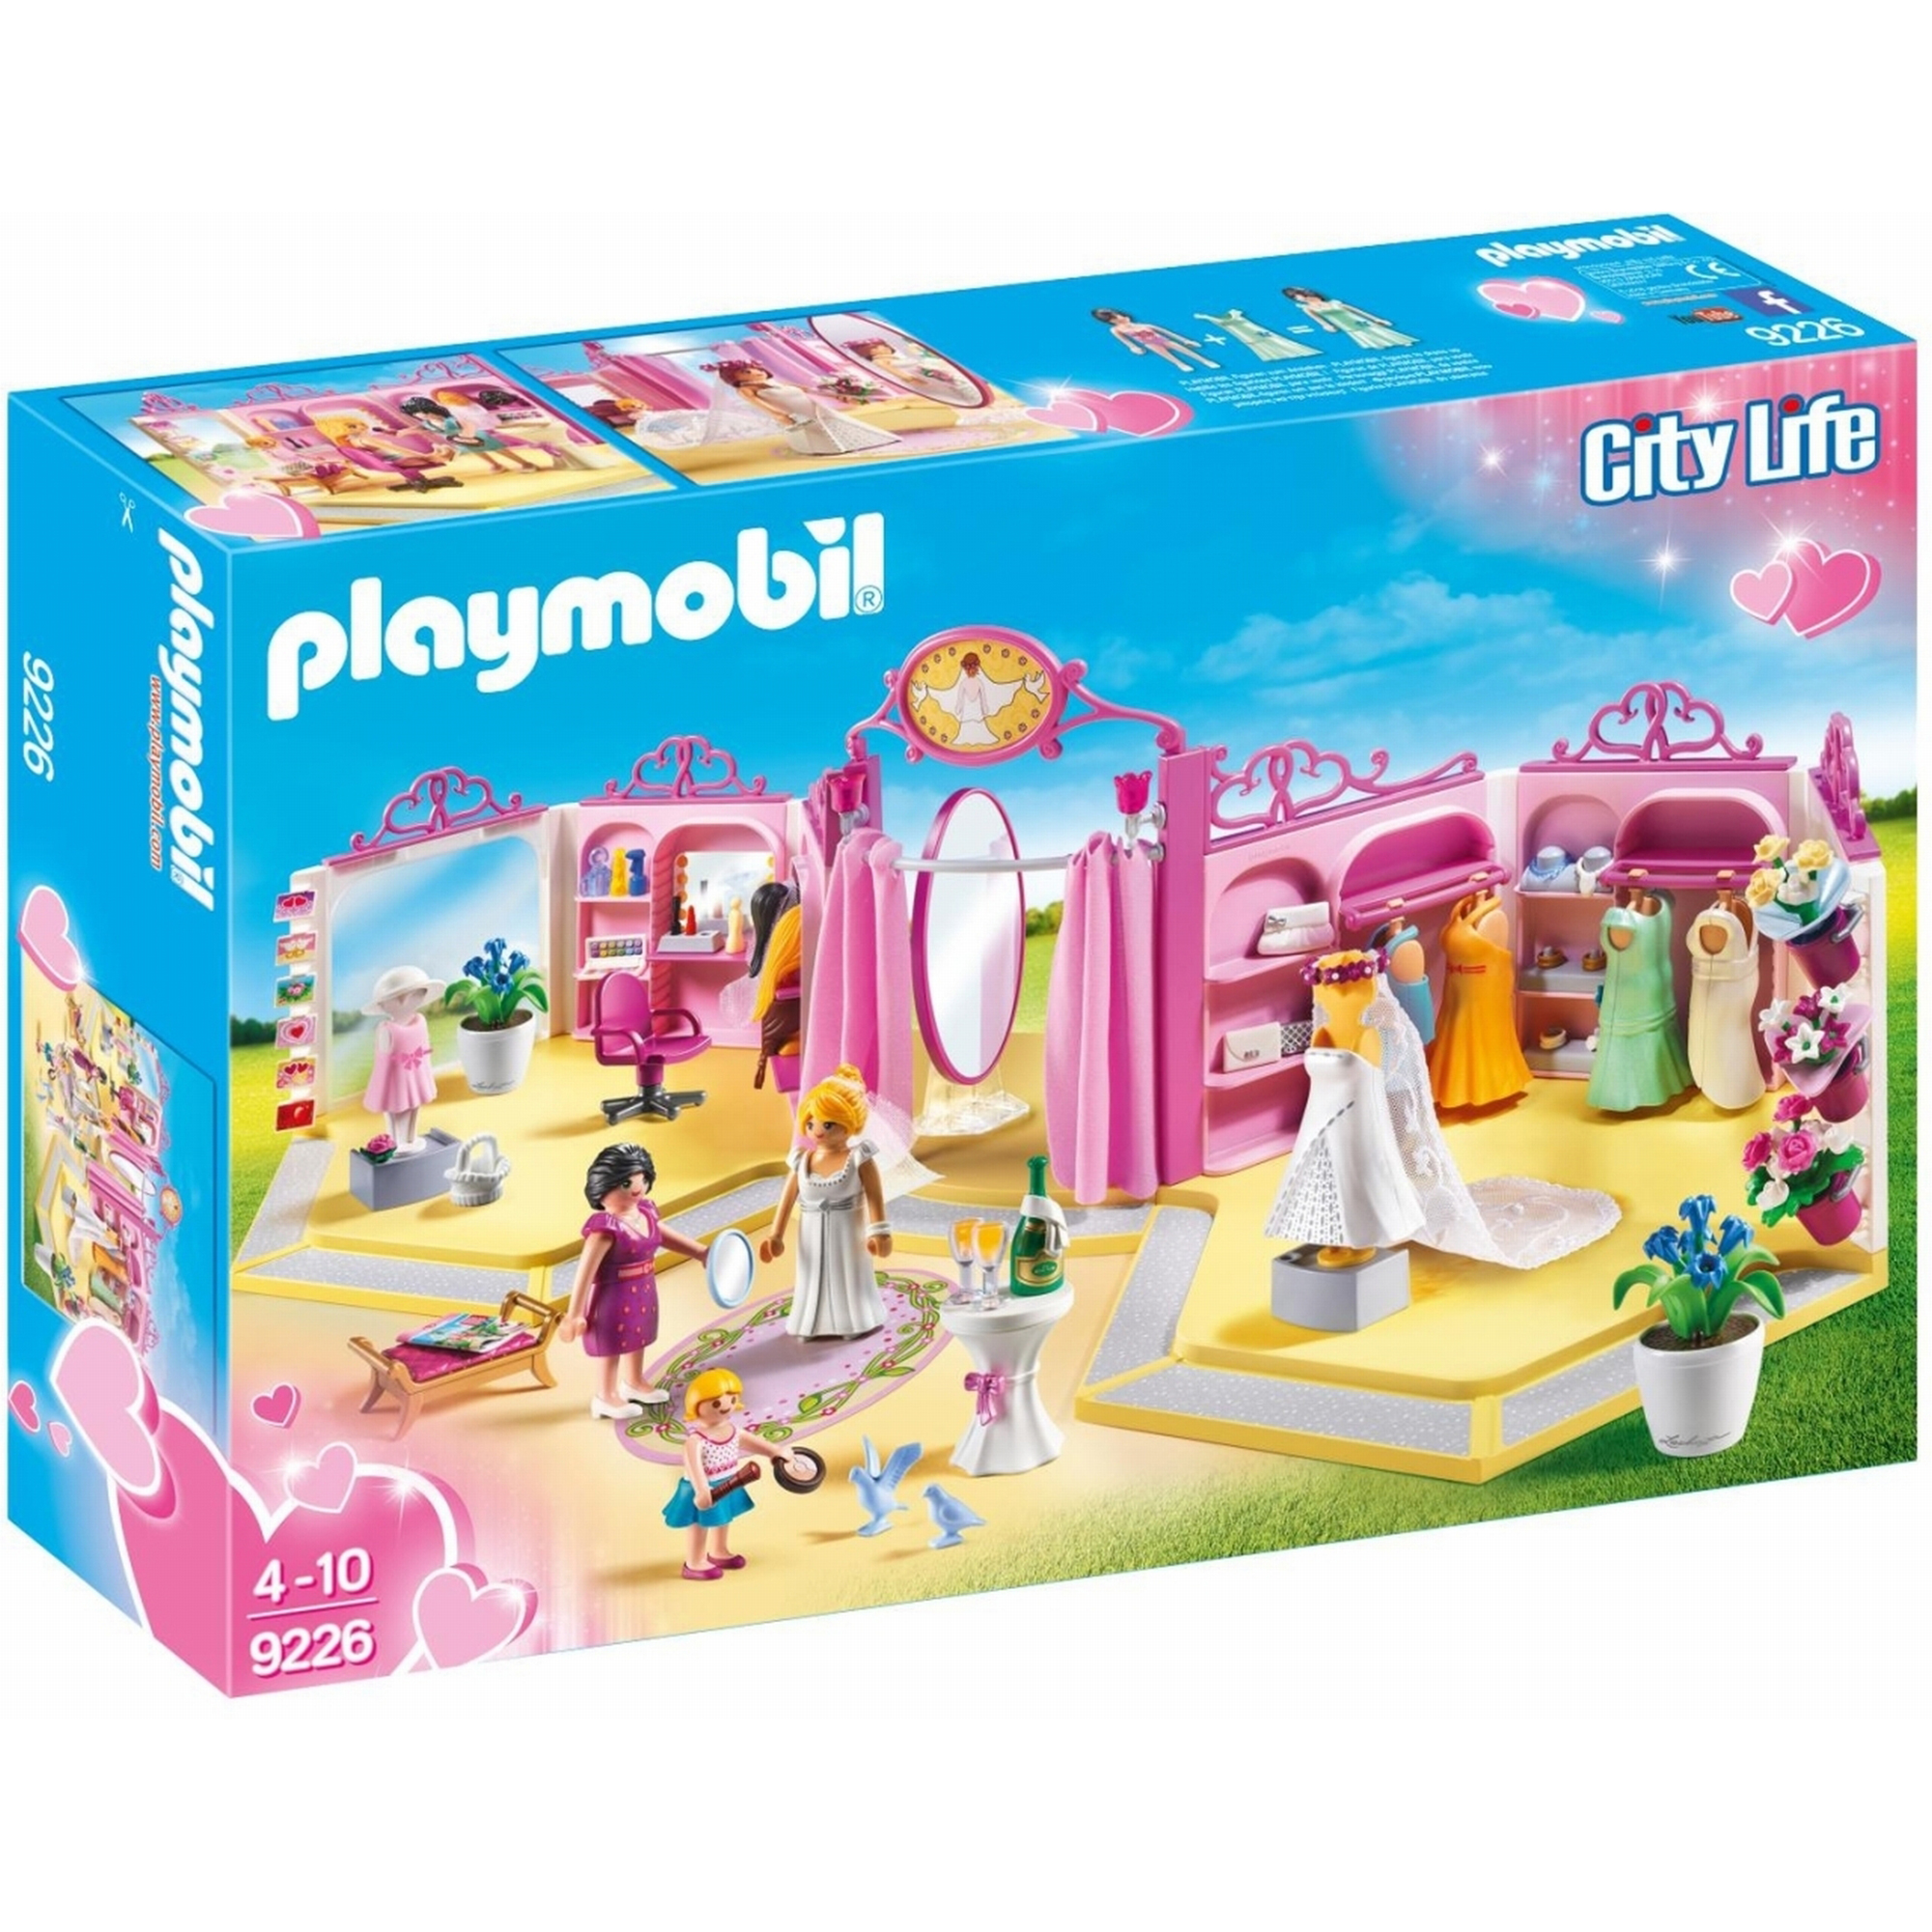 Playmobil City Life Bridal Shop 9226